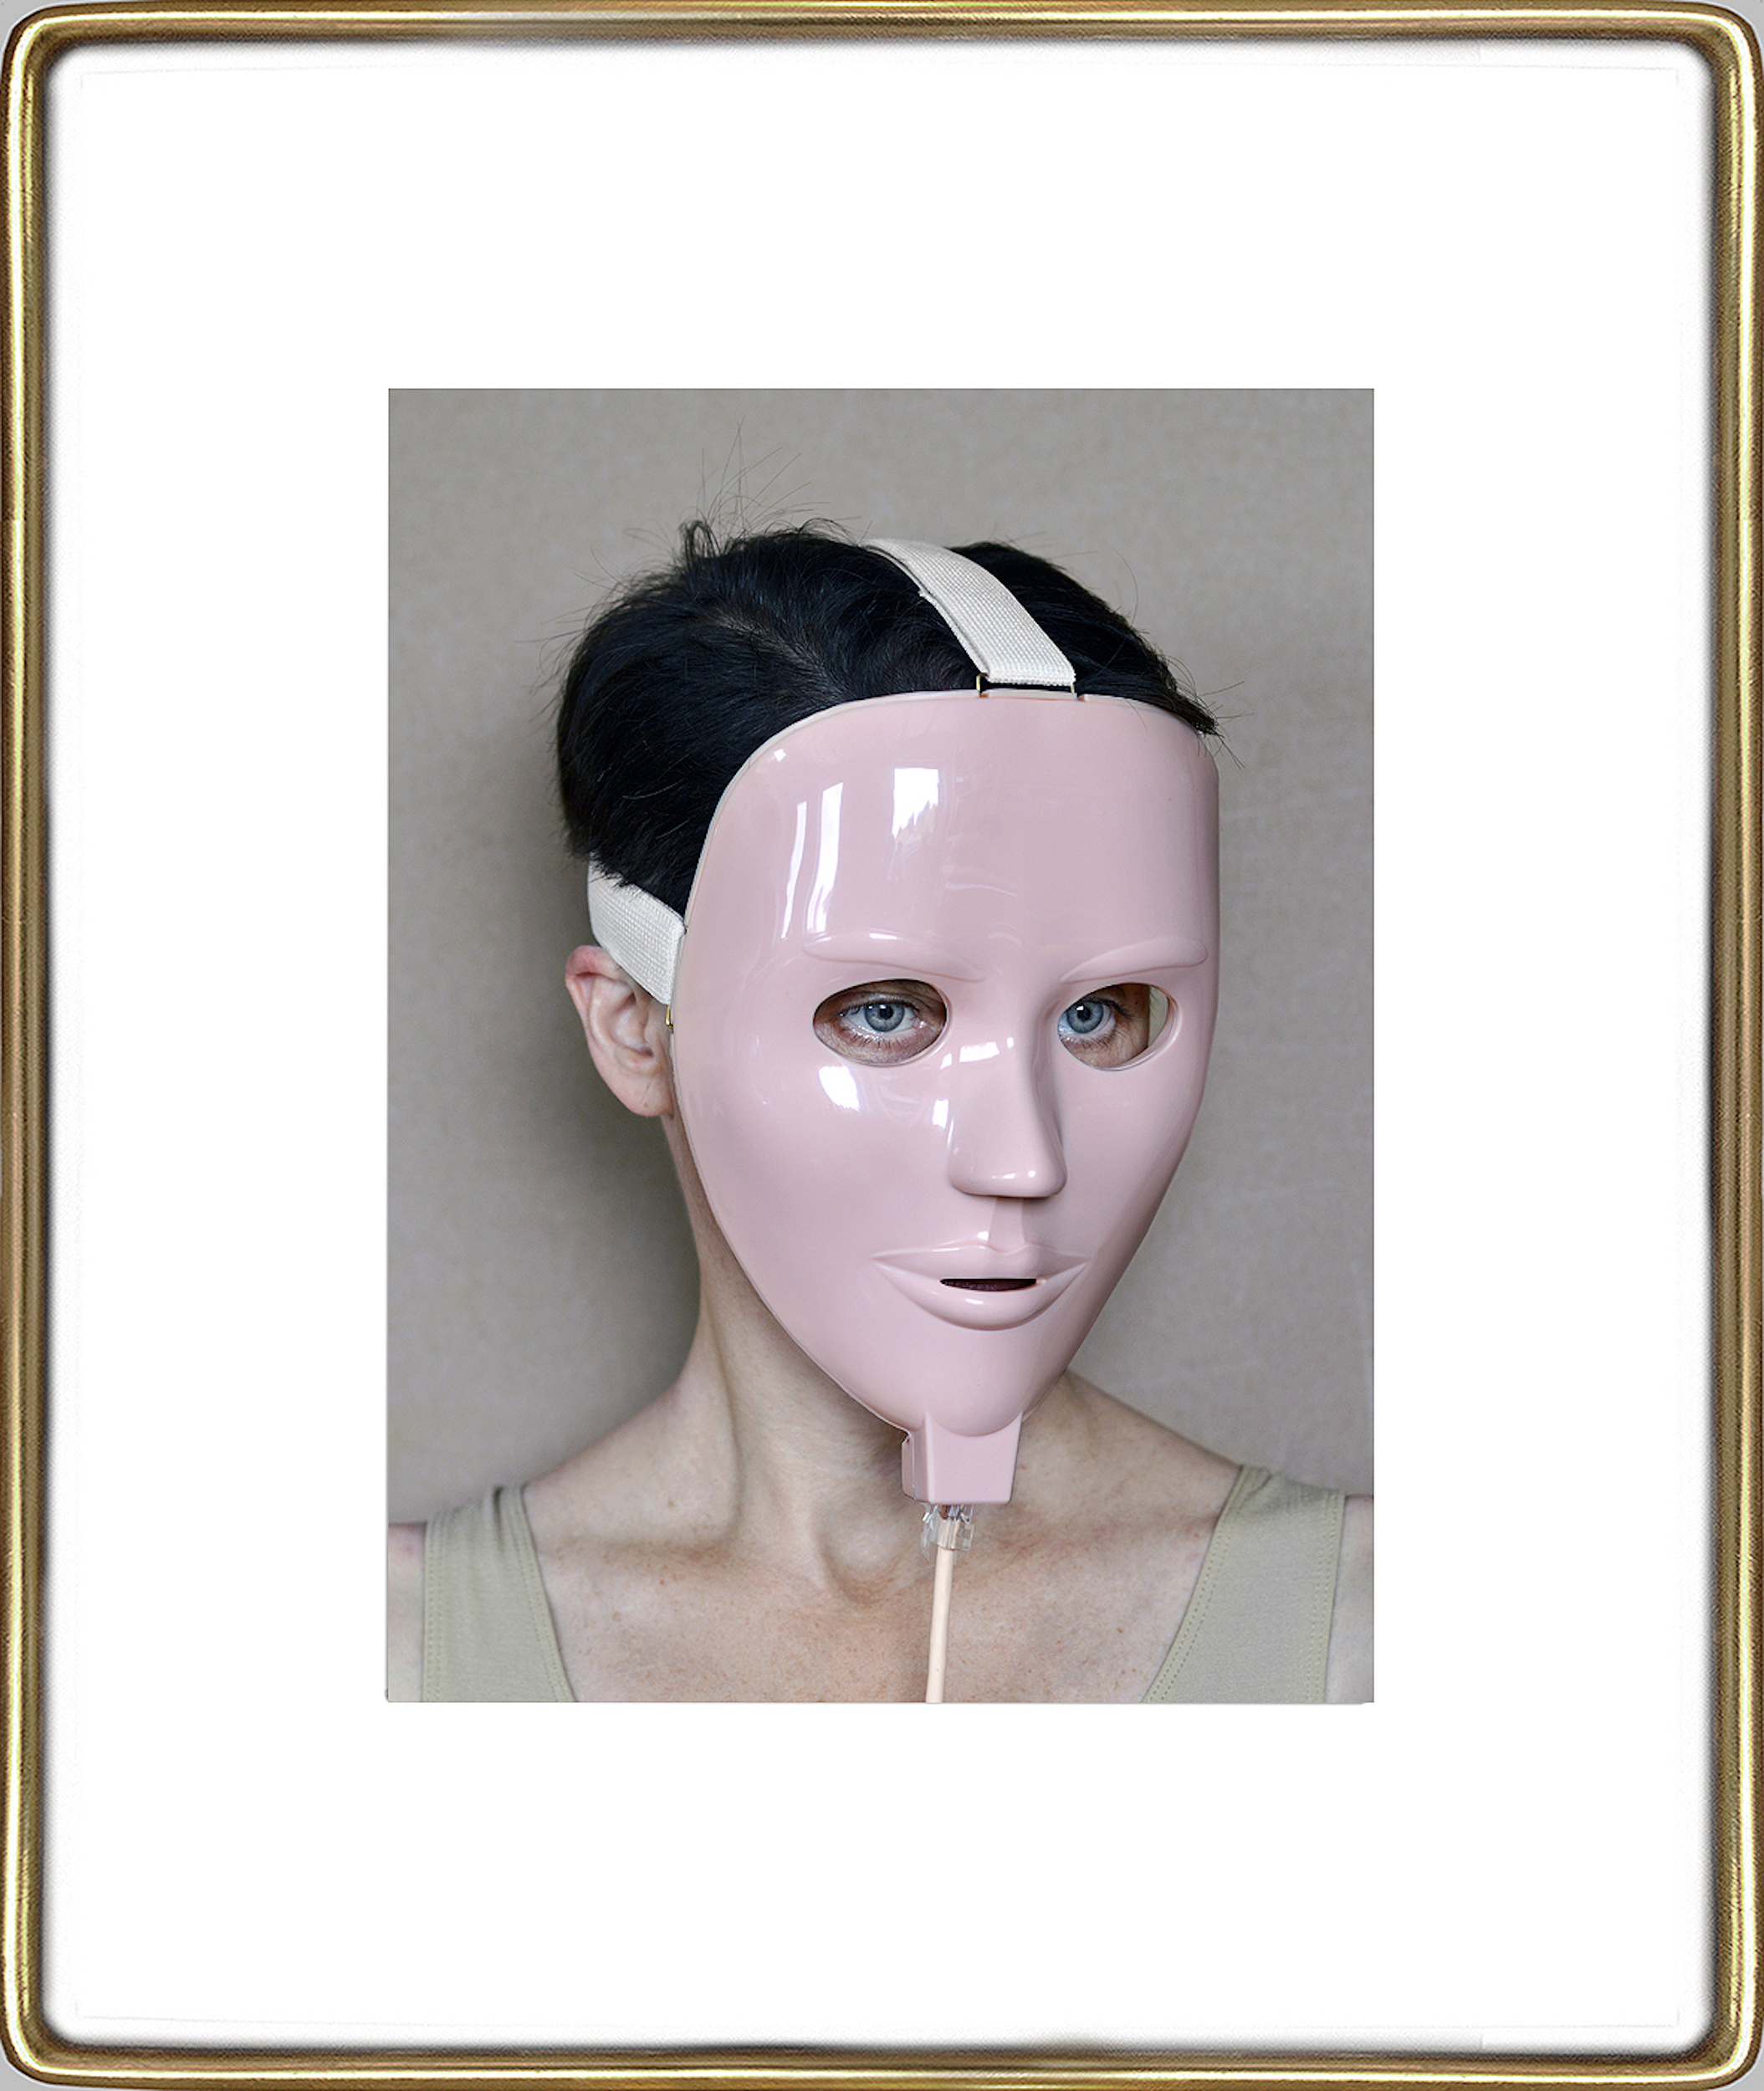 Aneta Grzeszykowska   Beauty Mask #10 , 2017  Pigment ink on cotton paper  16.93 x 12.40 inches  23.82 x 19.23 inches (framed)  Edition of 3 + I A.P.